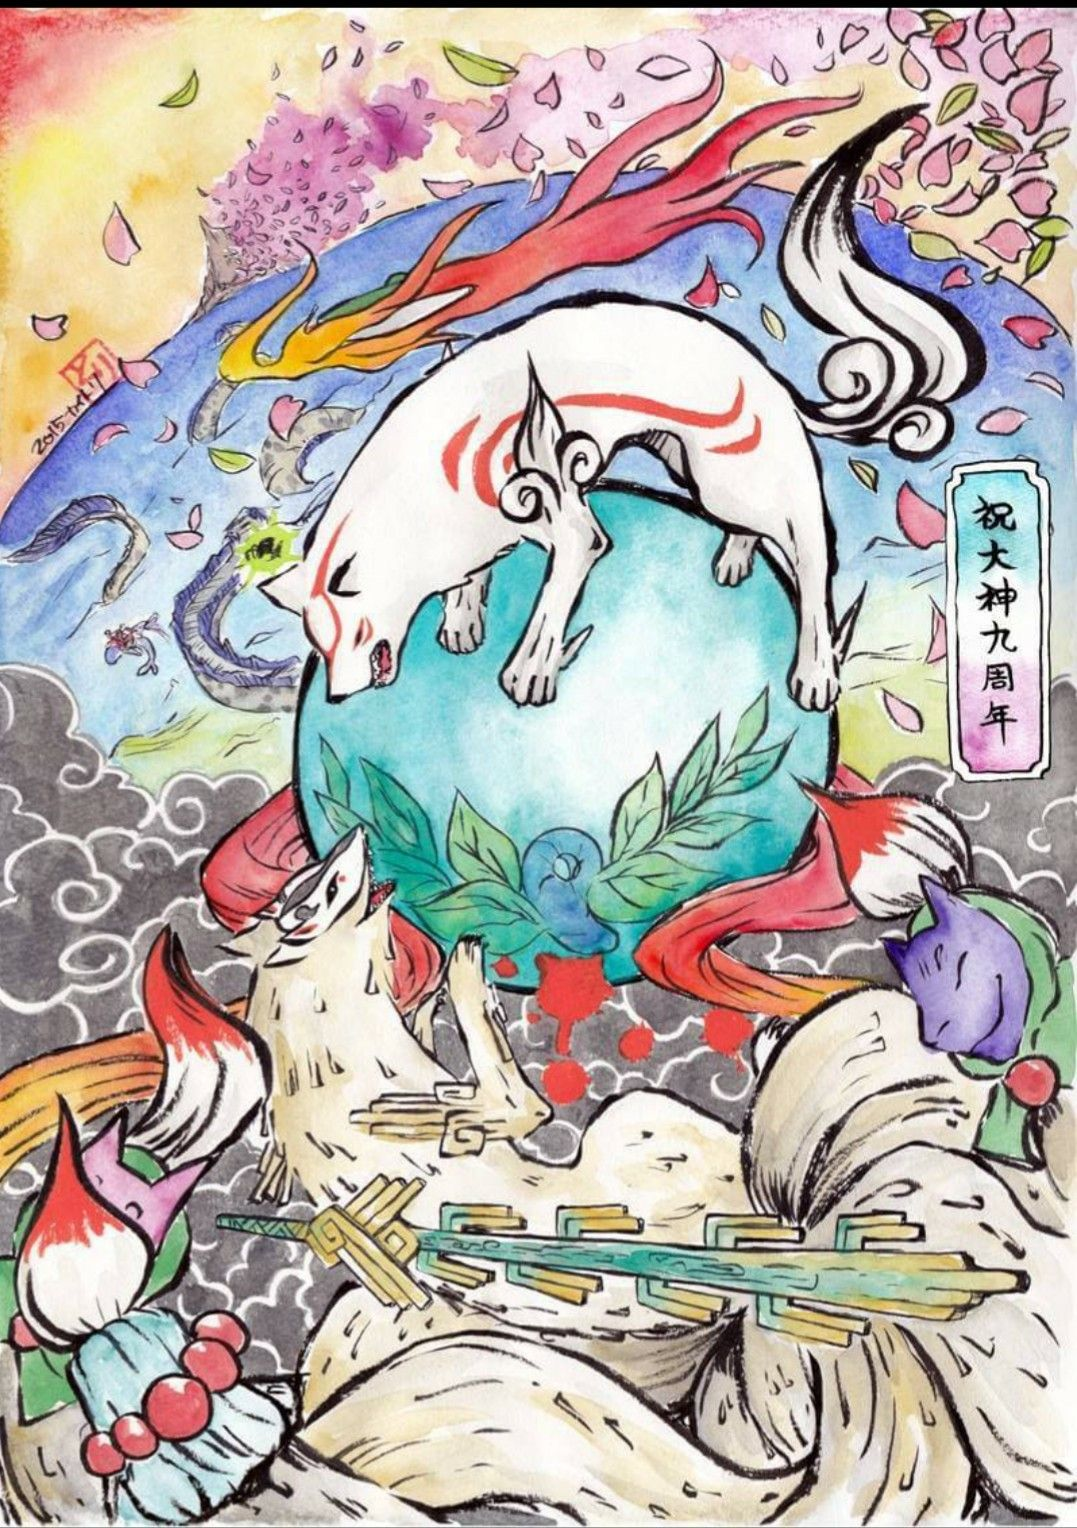 Pin By Dreamdruid89 On Okami Amaterasu Game Art Anime